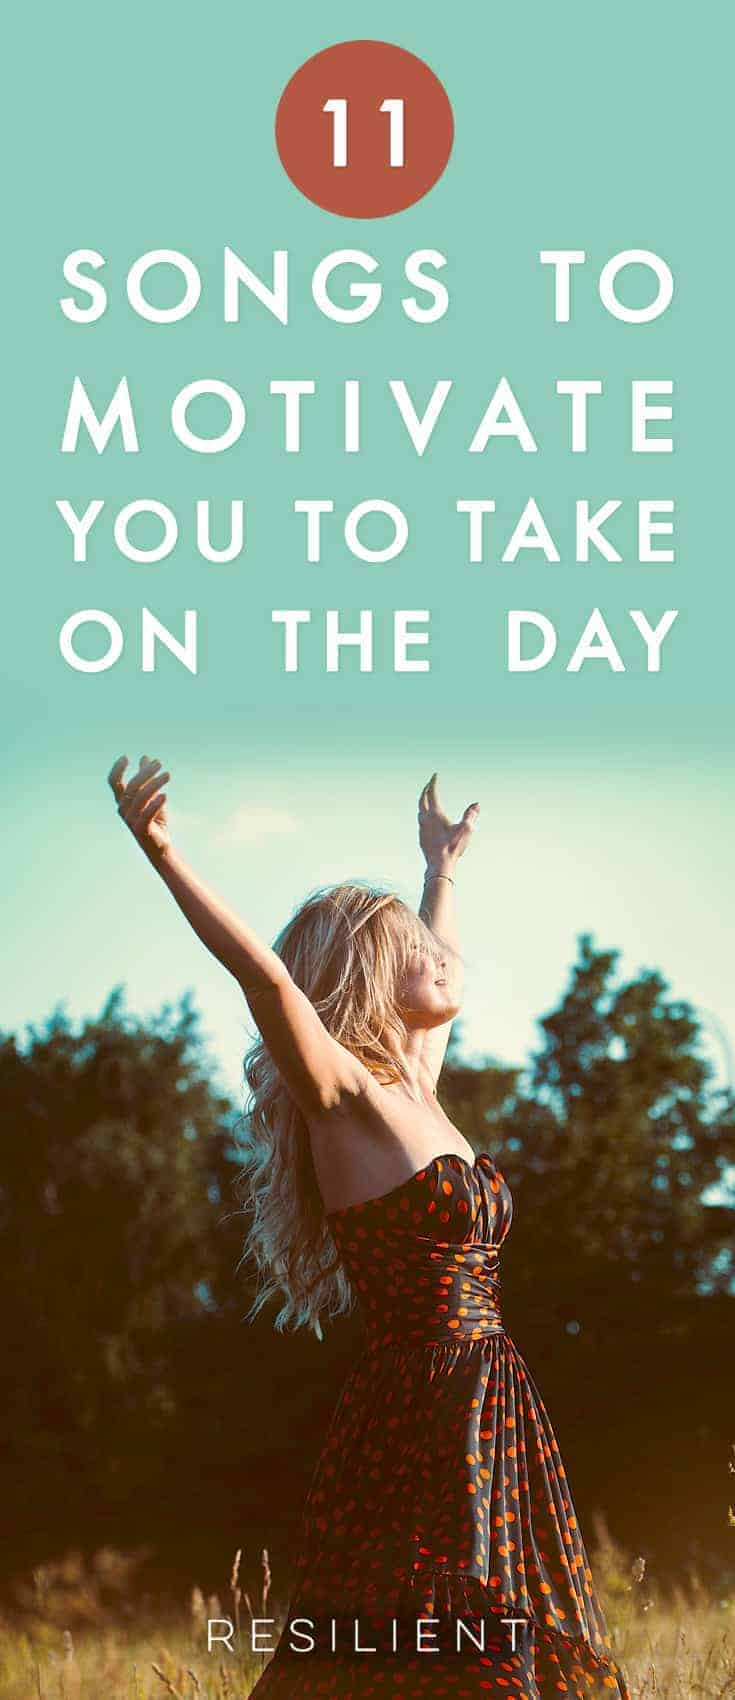 Feeling uninspired and blah? Need to get serious stuff done today? Here are 11 songs to motivate you to take on the day when you need a little boost.